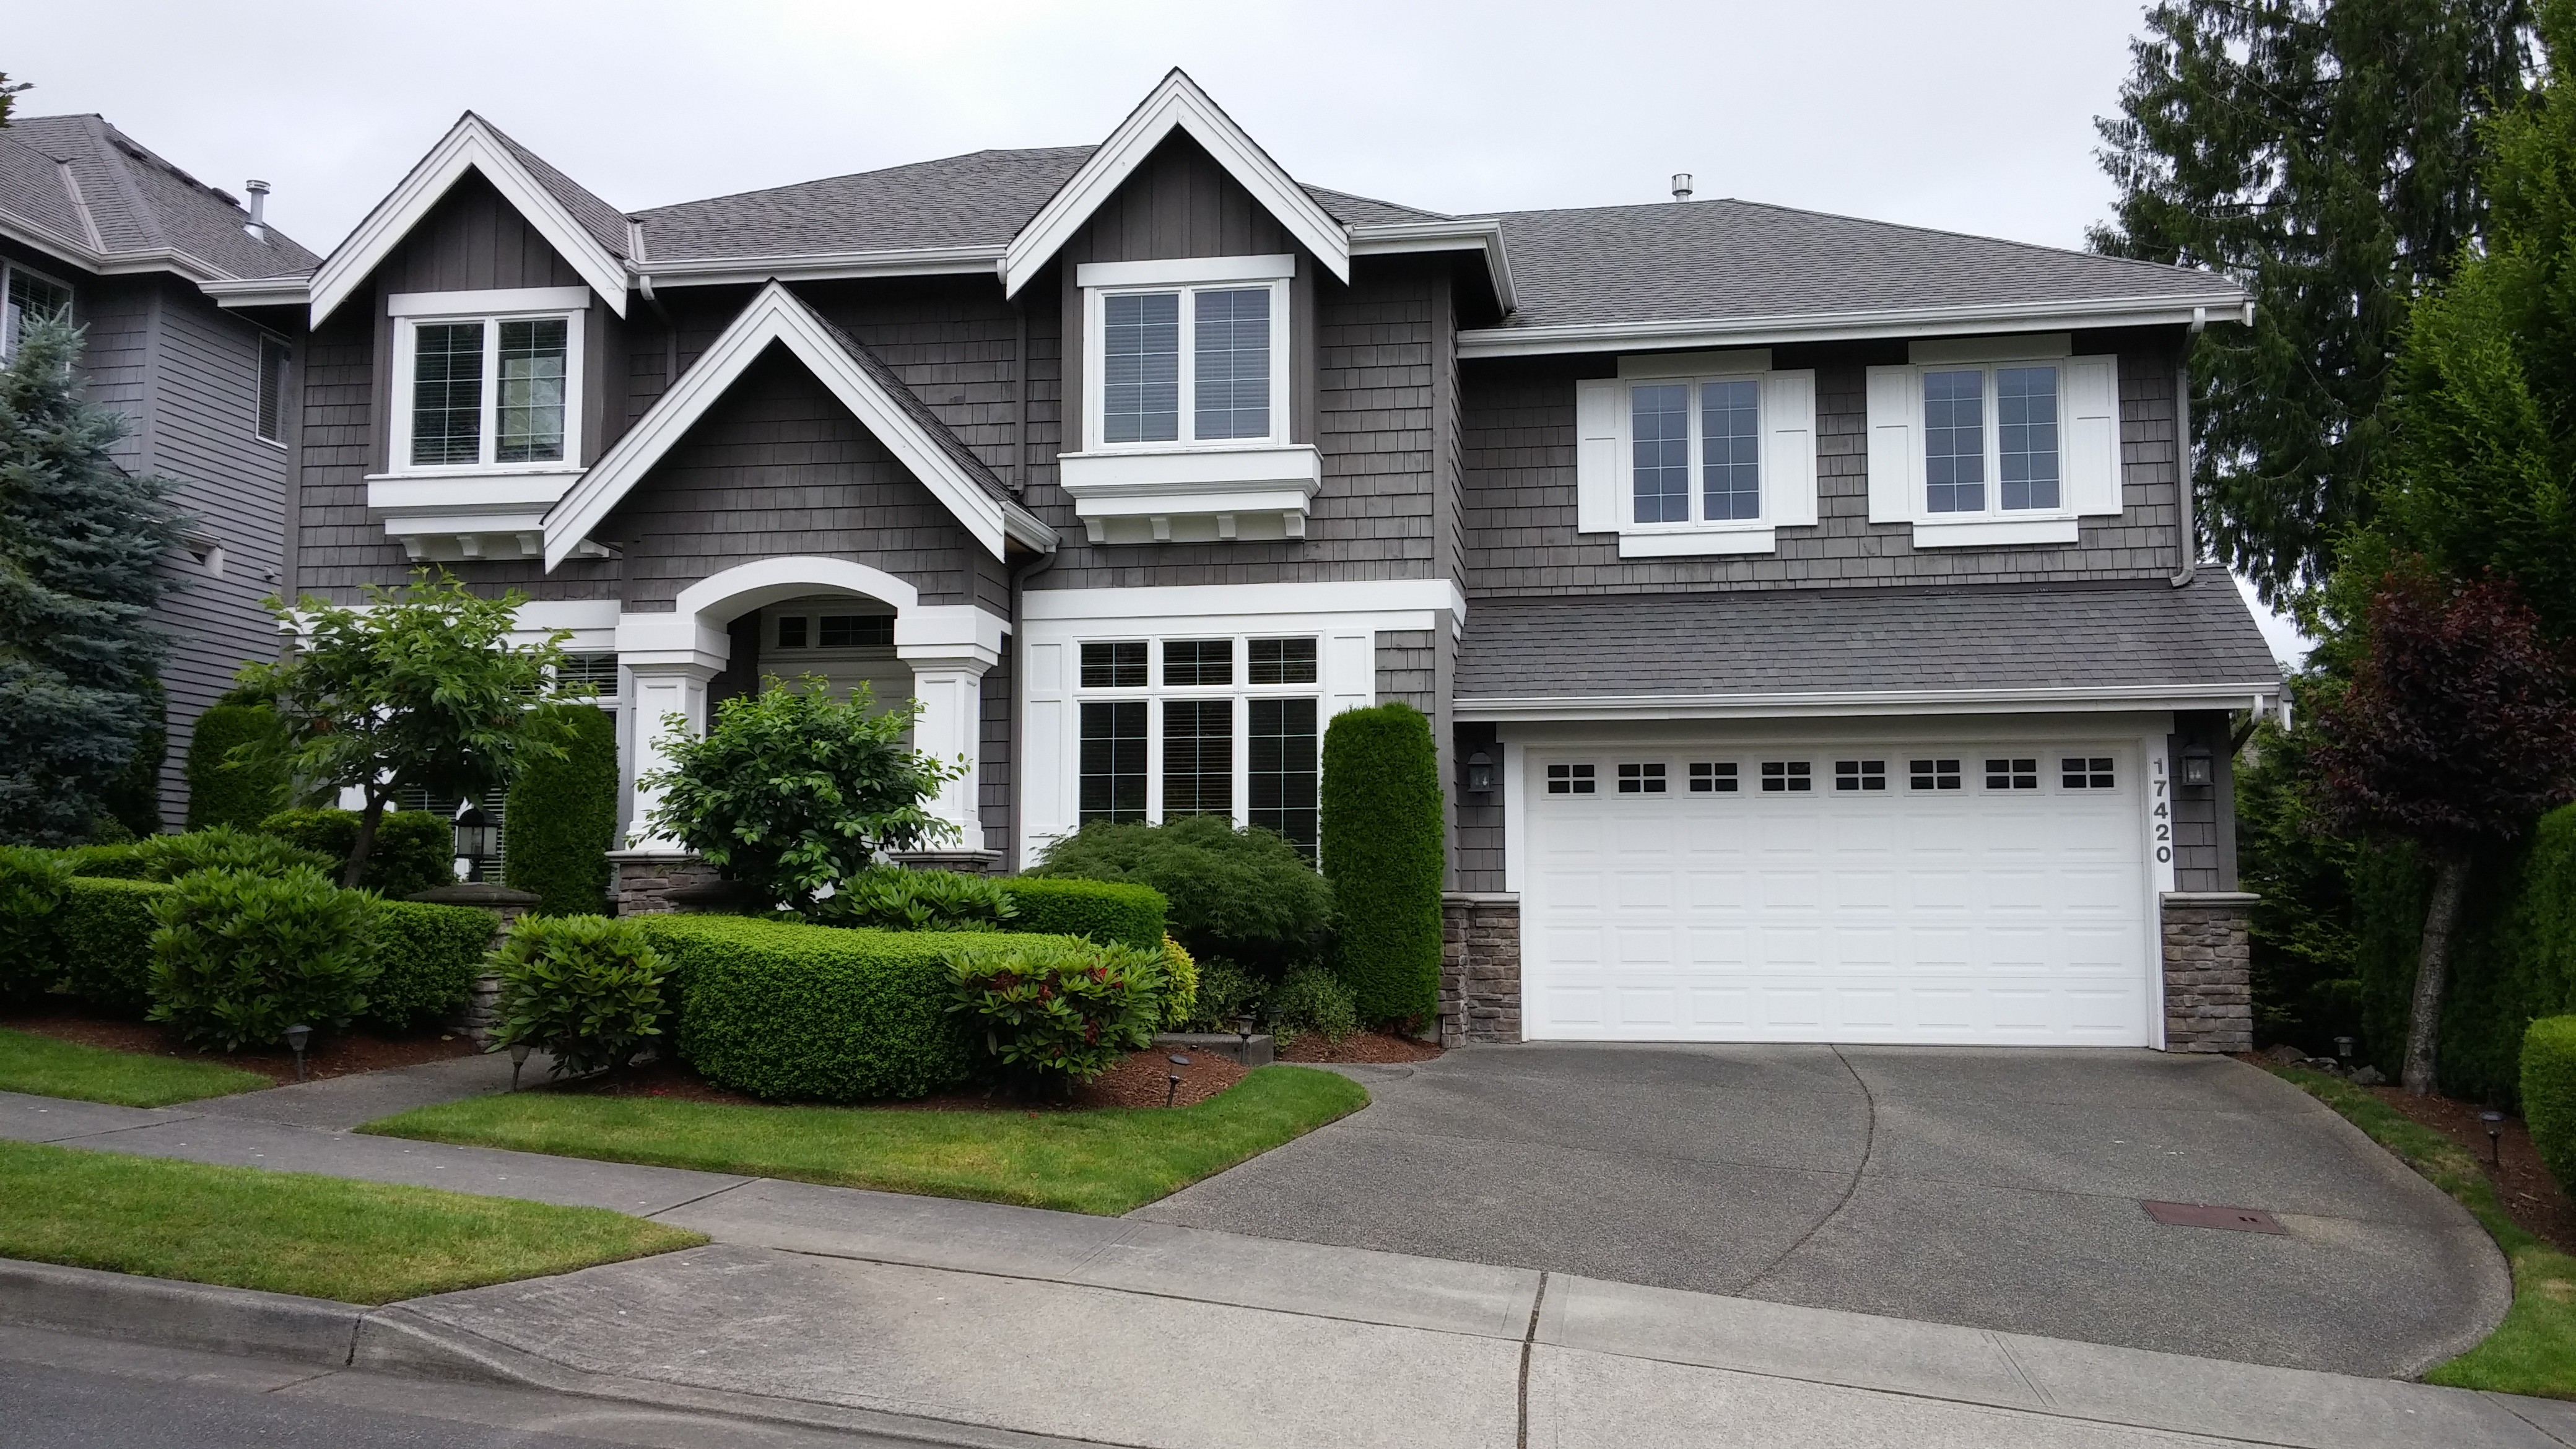 Home Insurance in Woodinville, WA